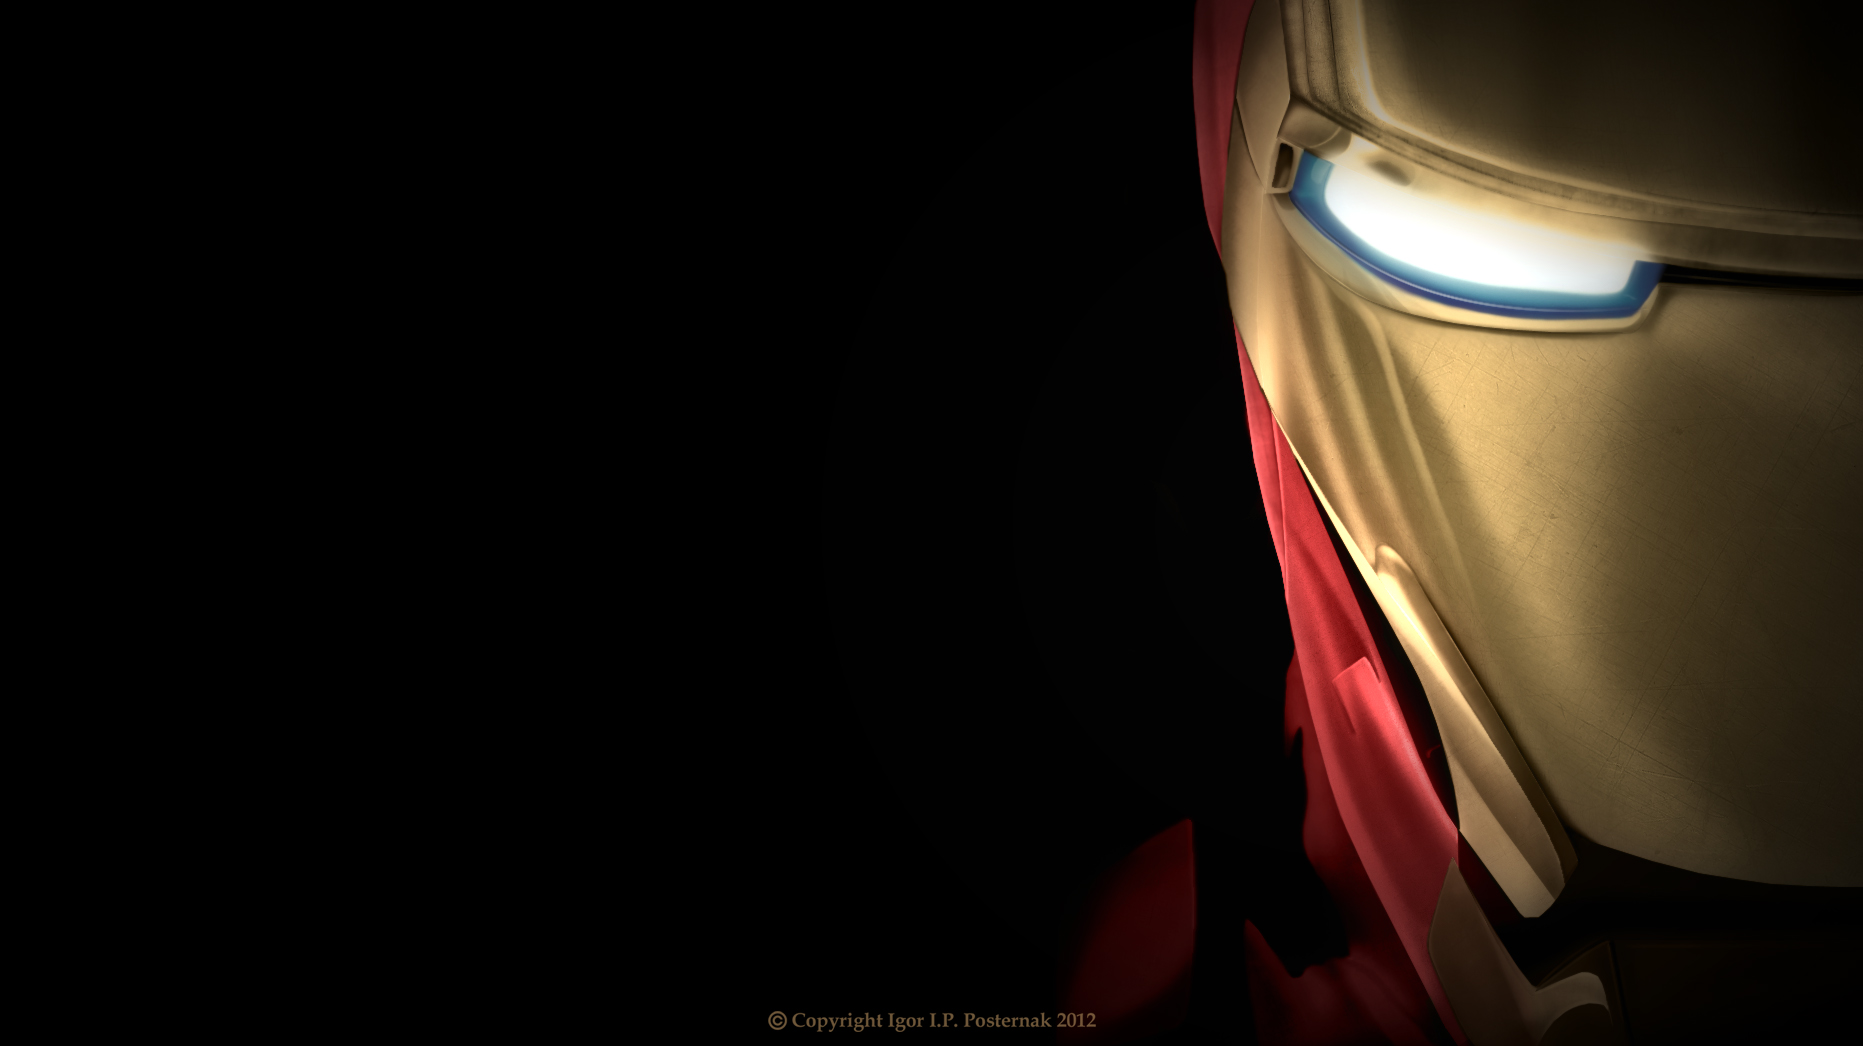 iron man wallpapers pack by igorposternak d5fpq3jjpg 1863x1046